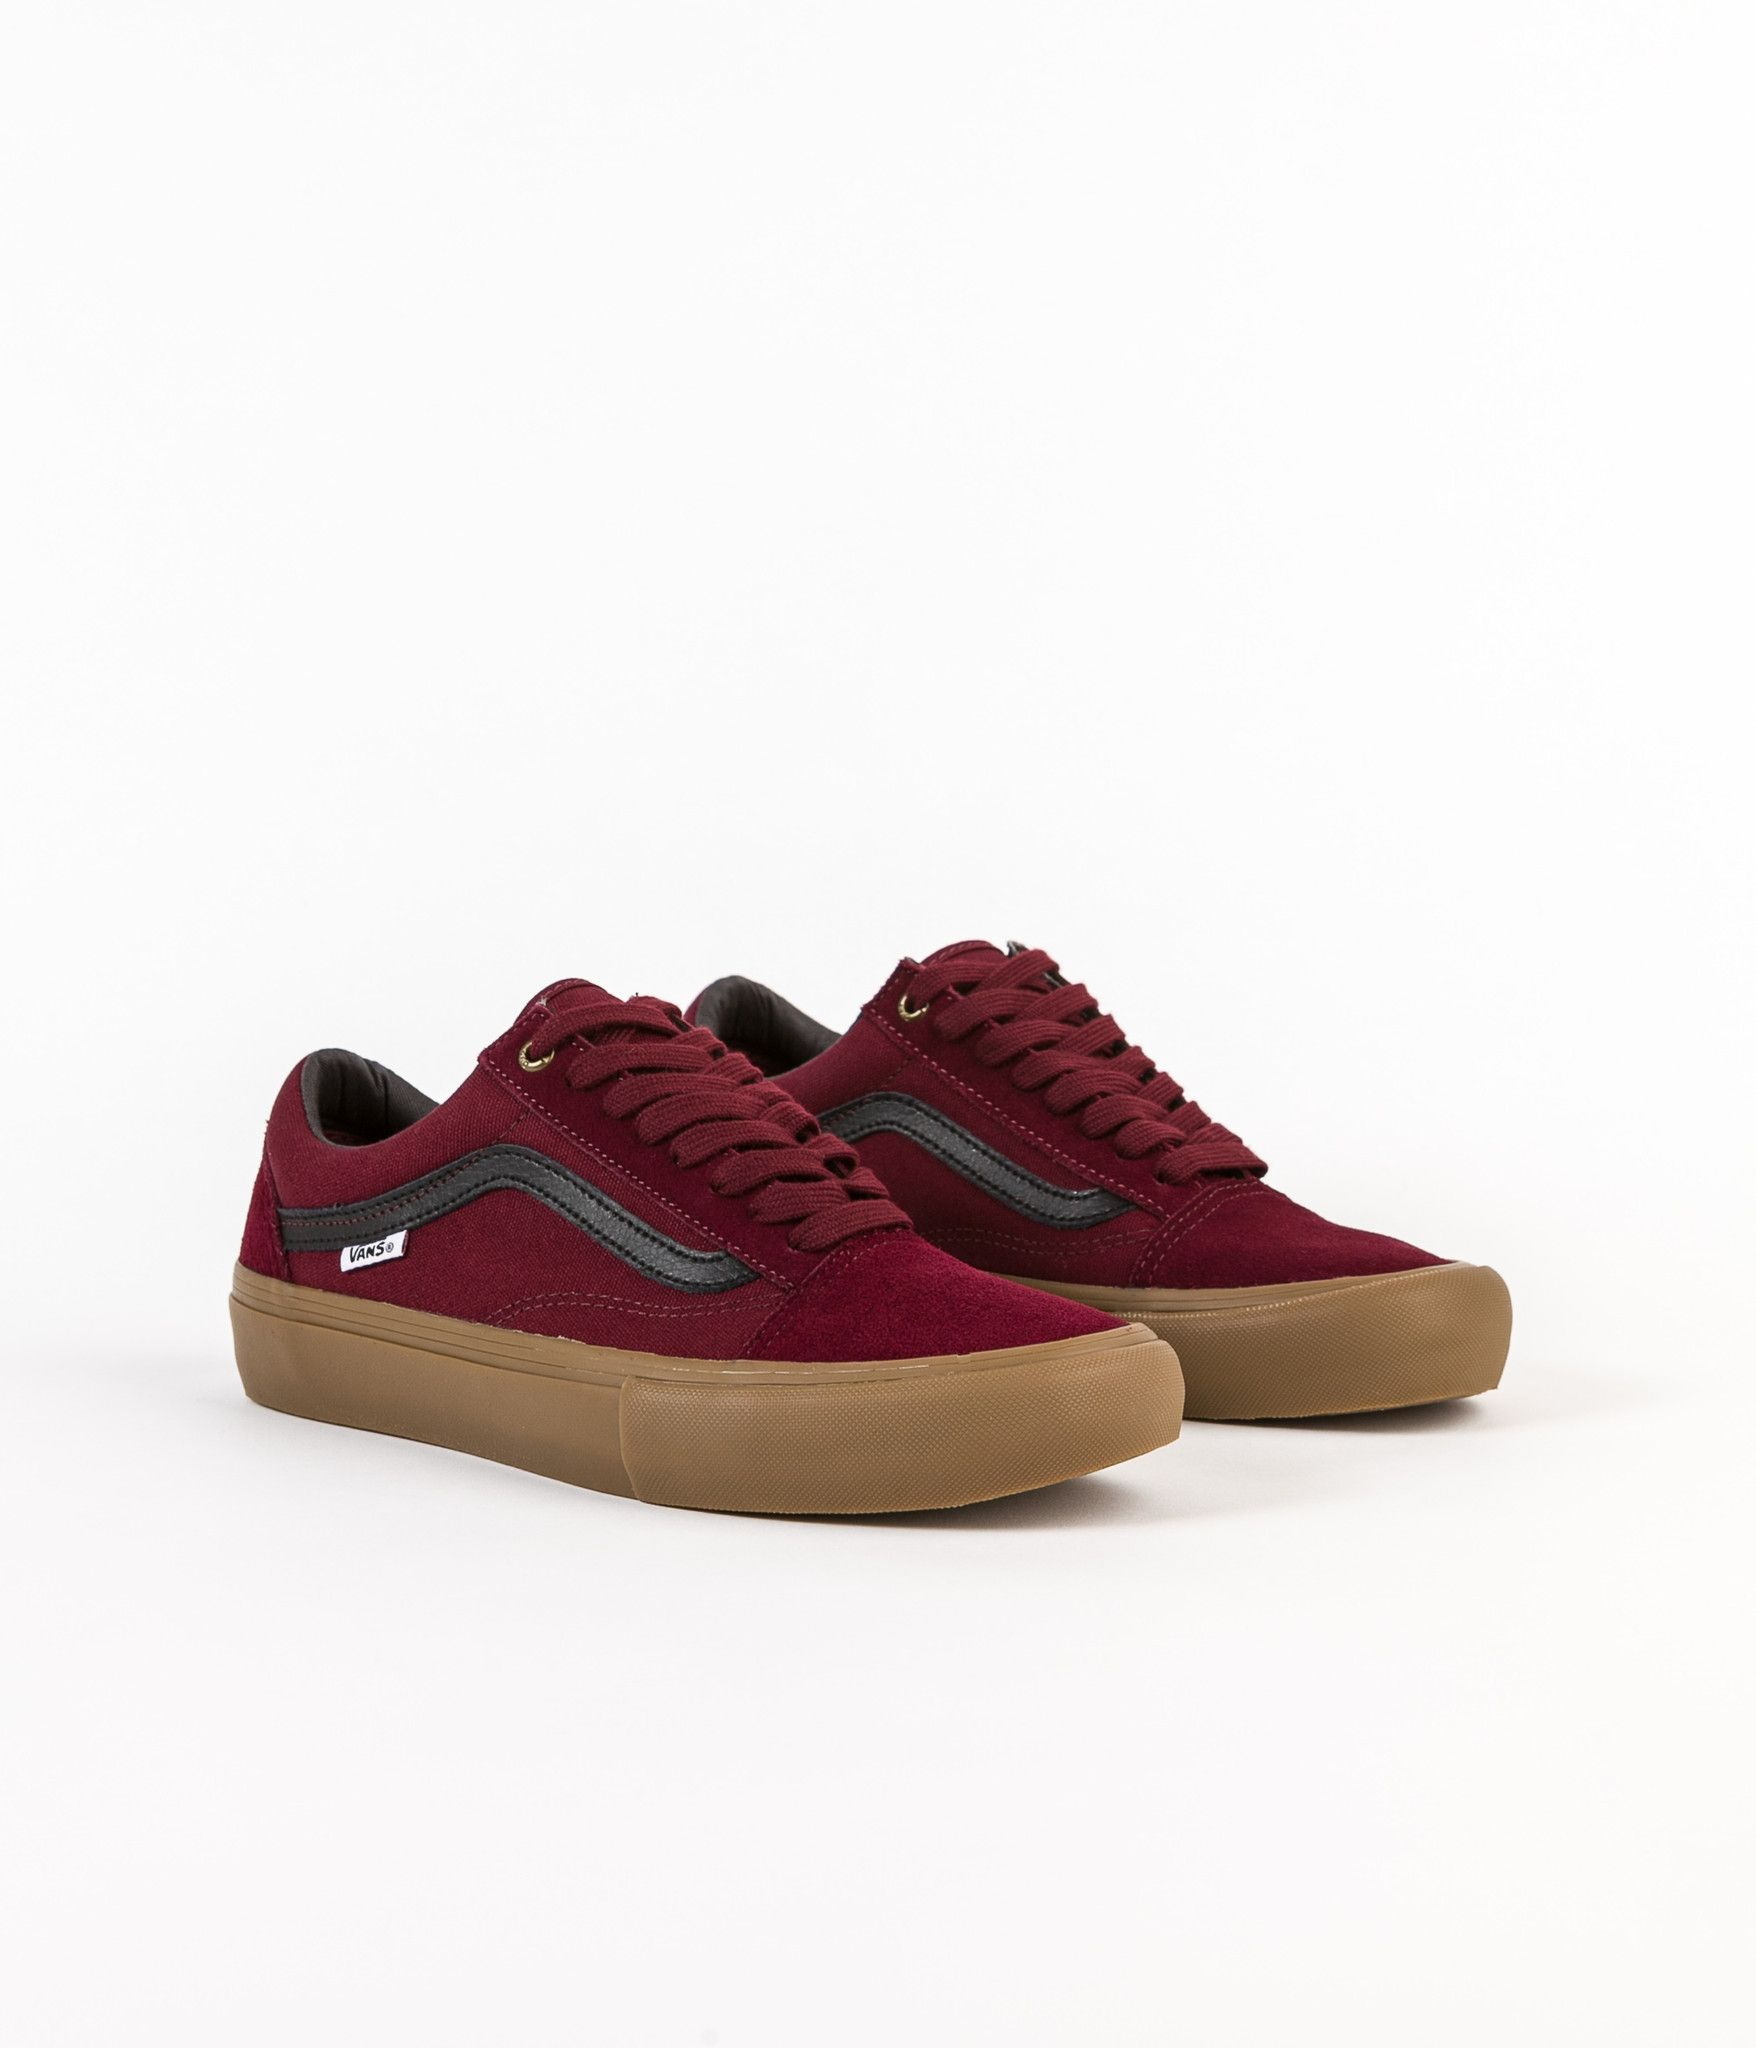 534ef039cb0496 Vans Old Skool Pro Shoes - Port   Black   Gum